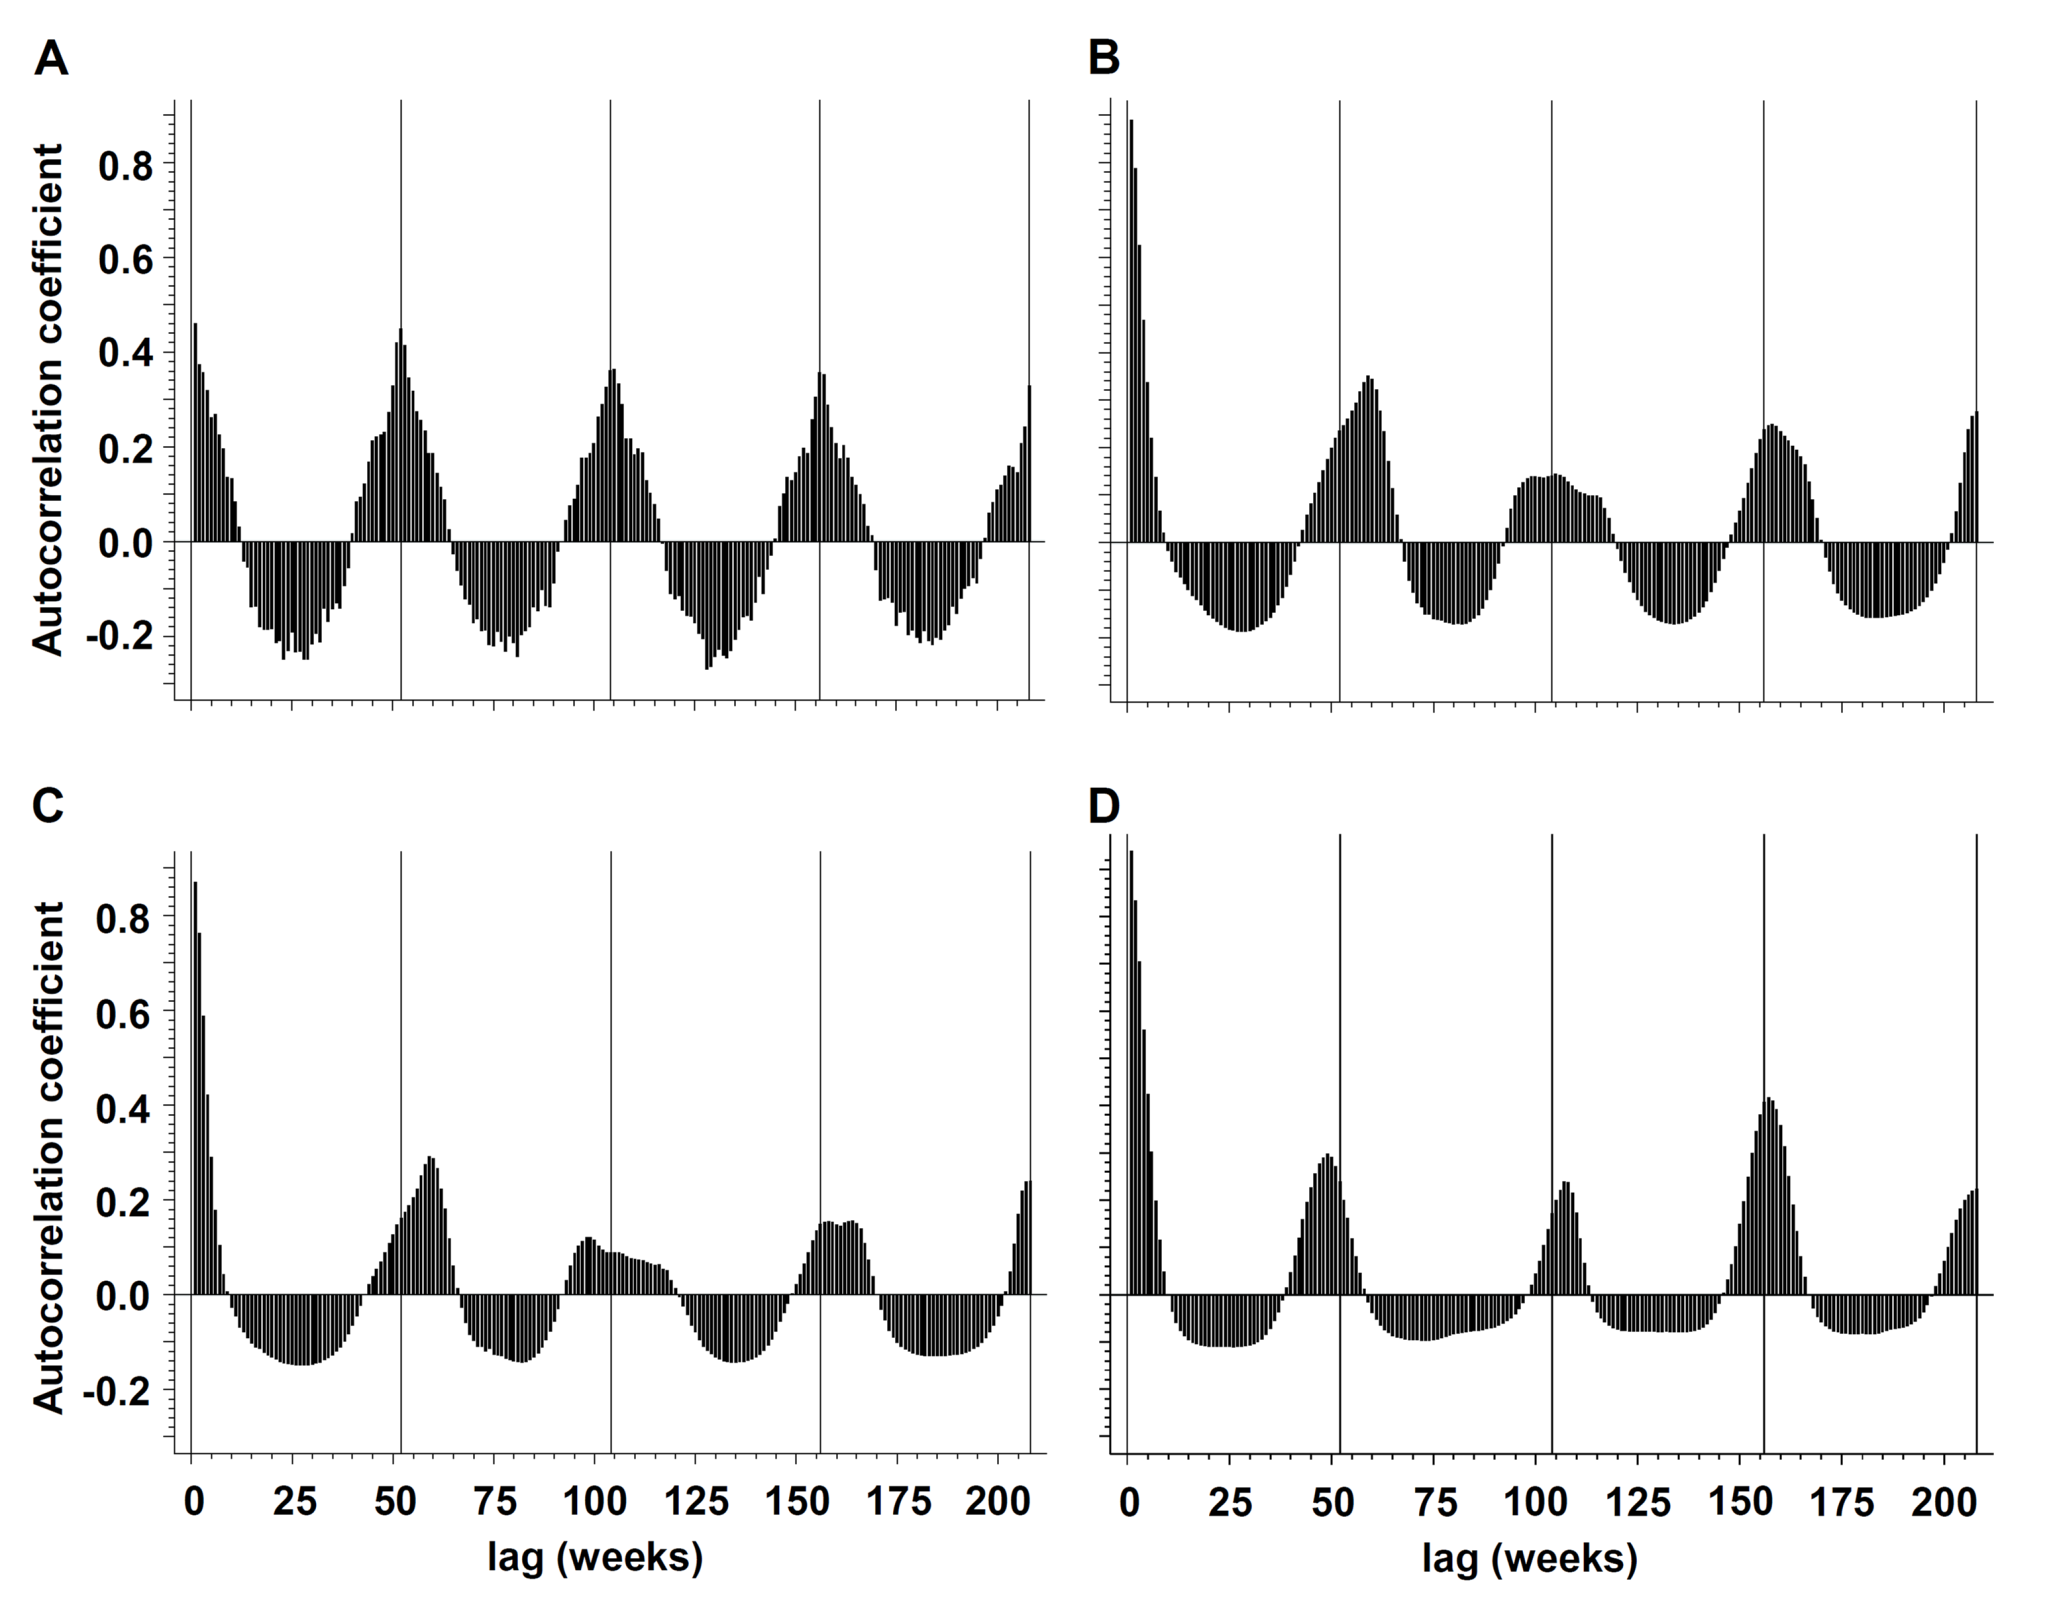 Periodicity of influenza and IPD.